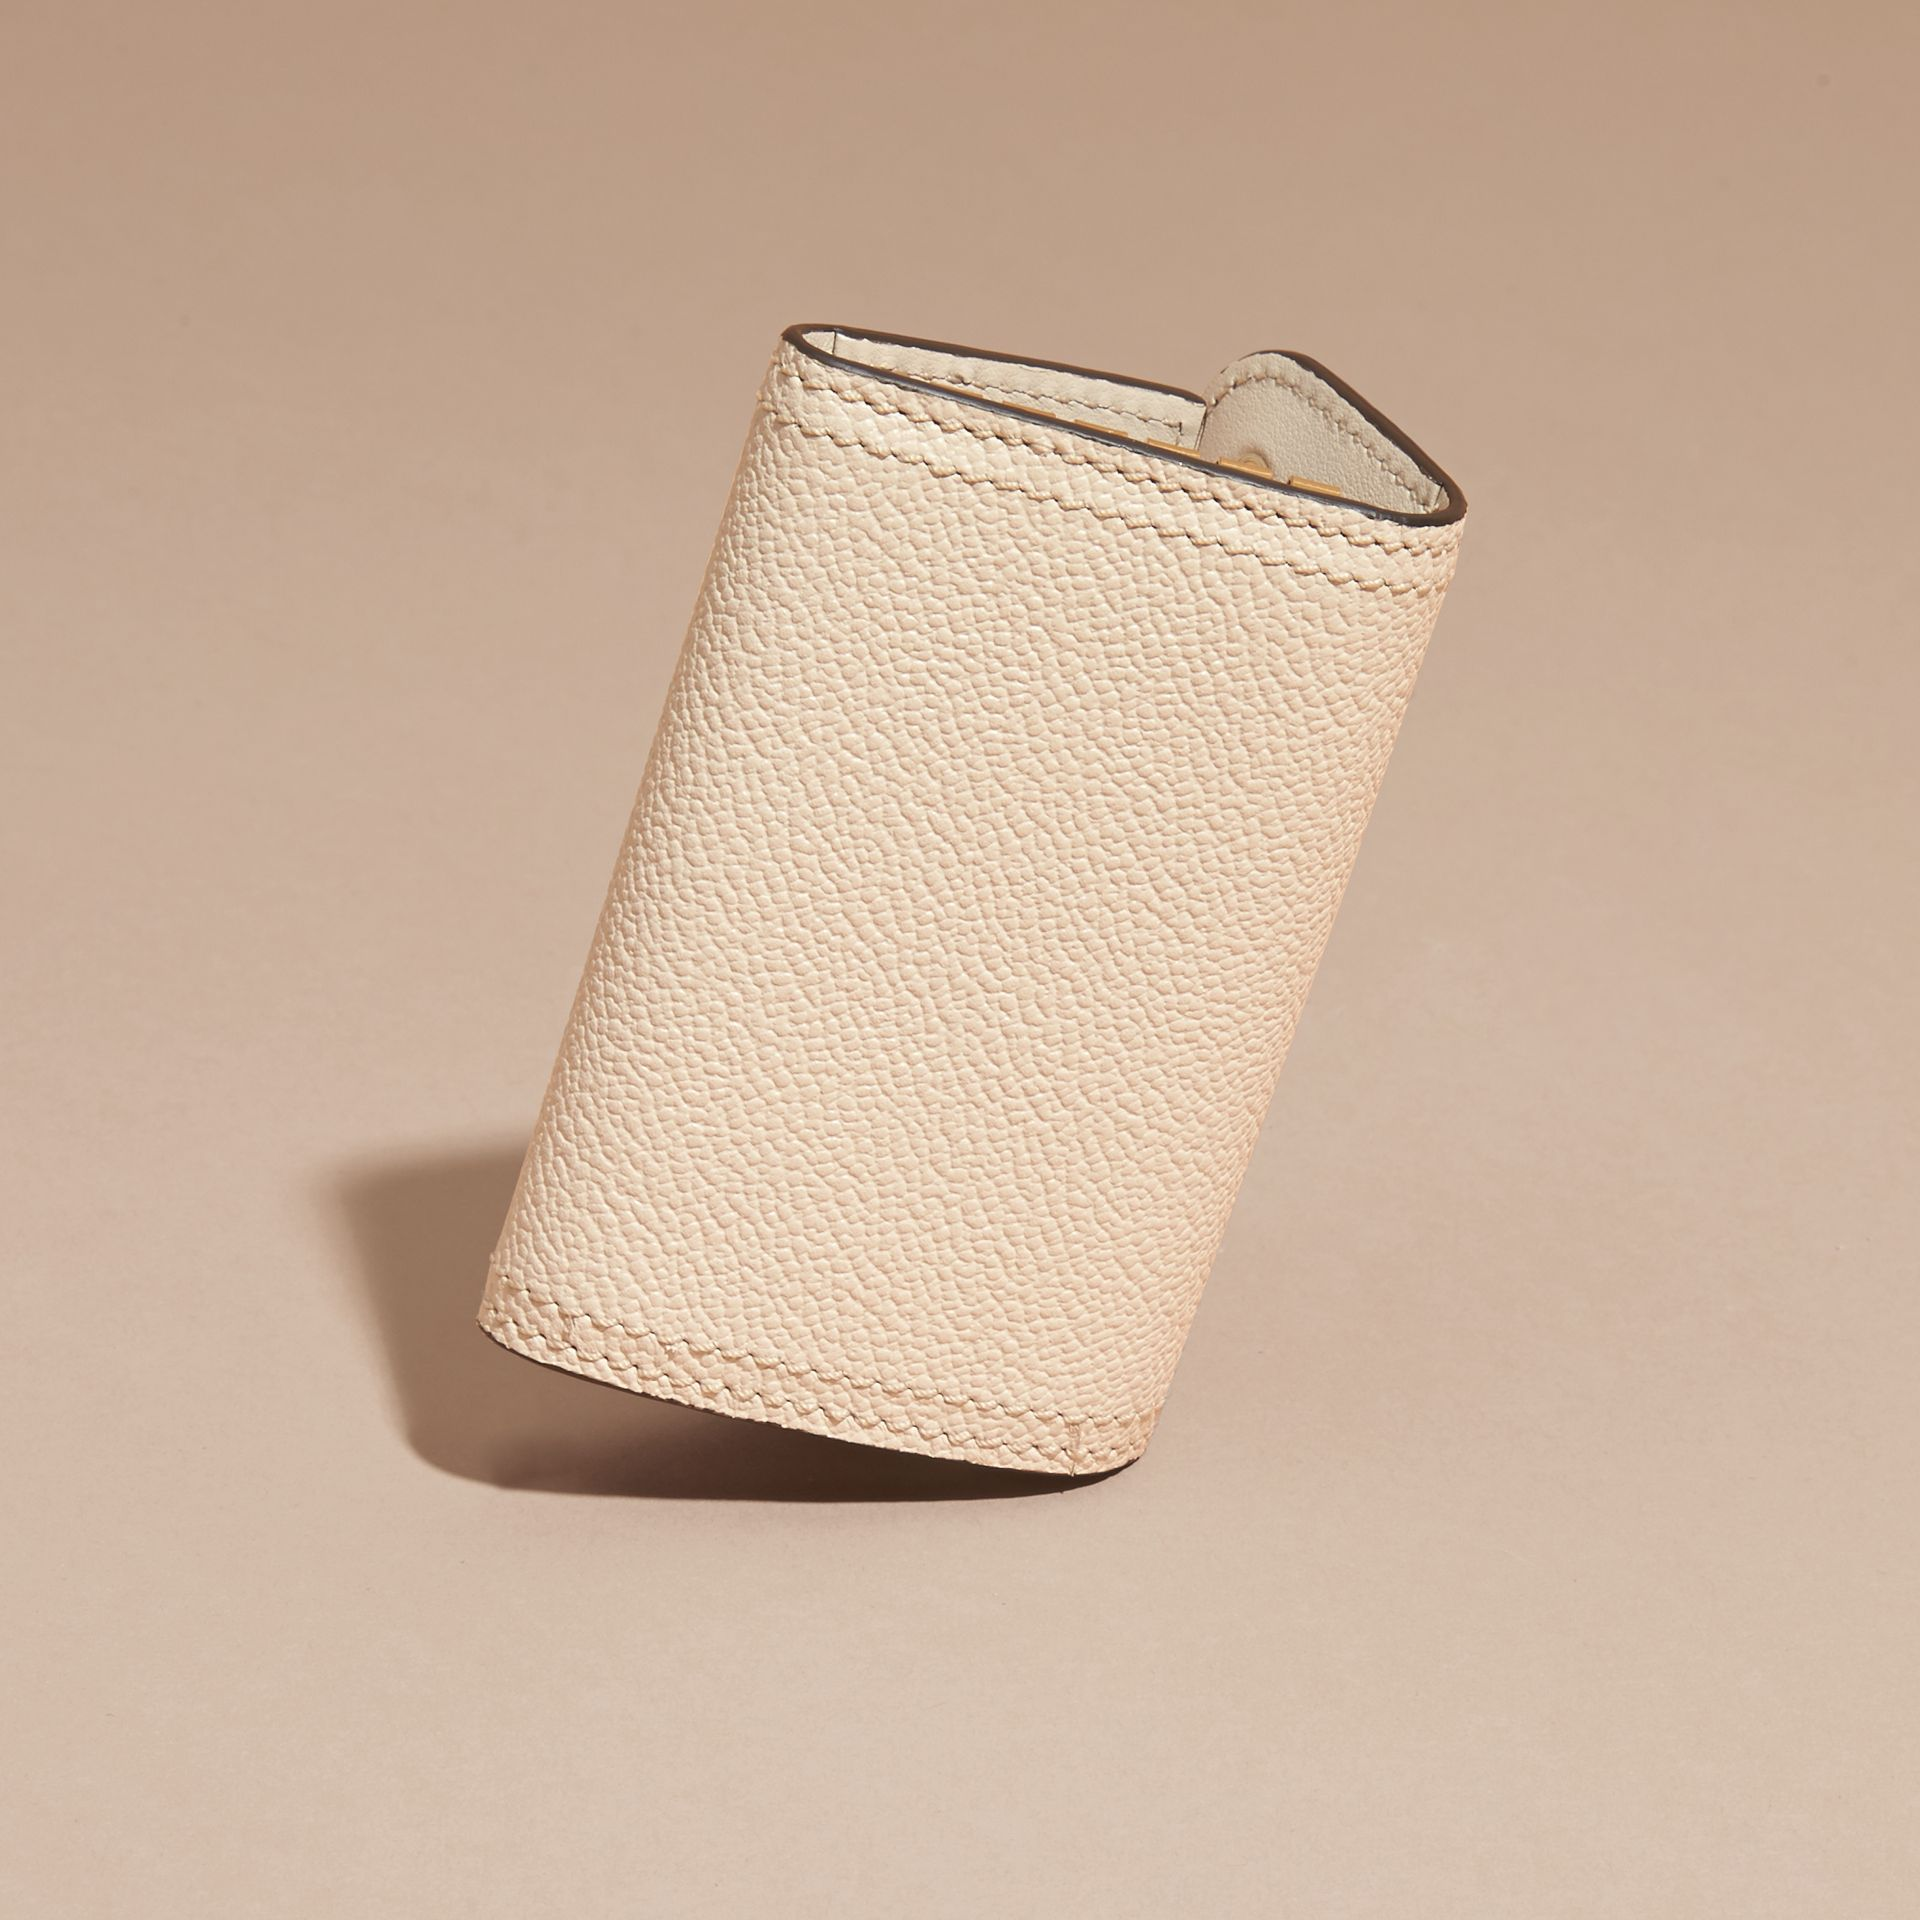 Grainy Leather Key Holder in Limestone - Women | Burberry Singapore - gallery image 4